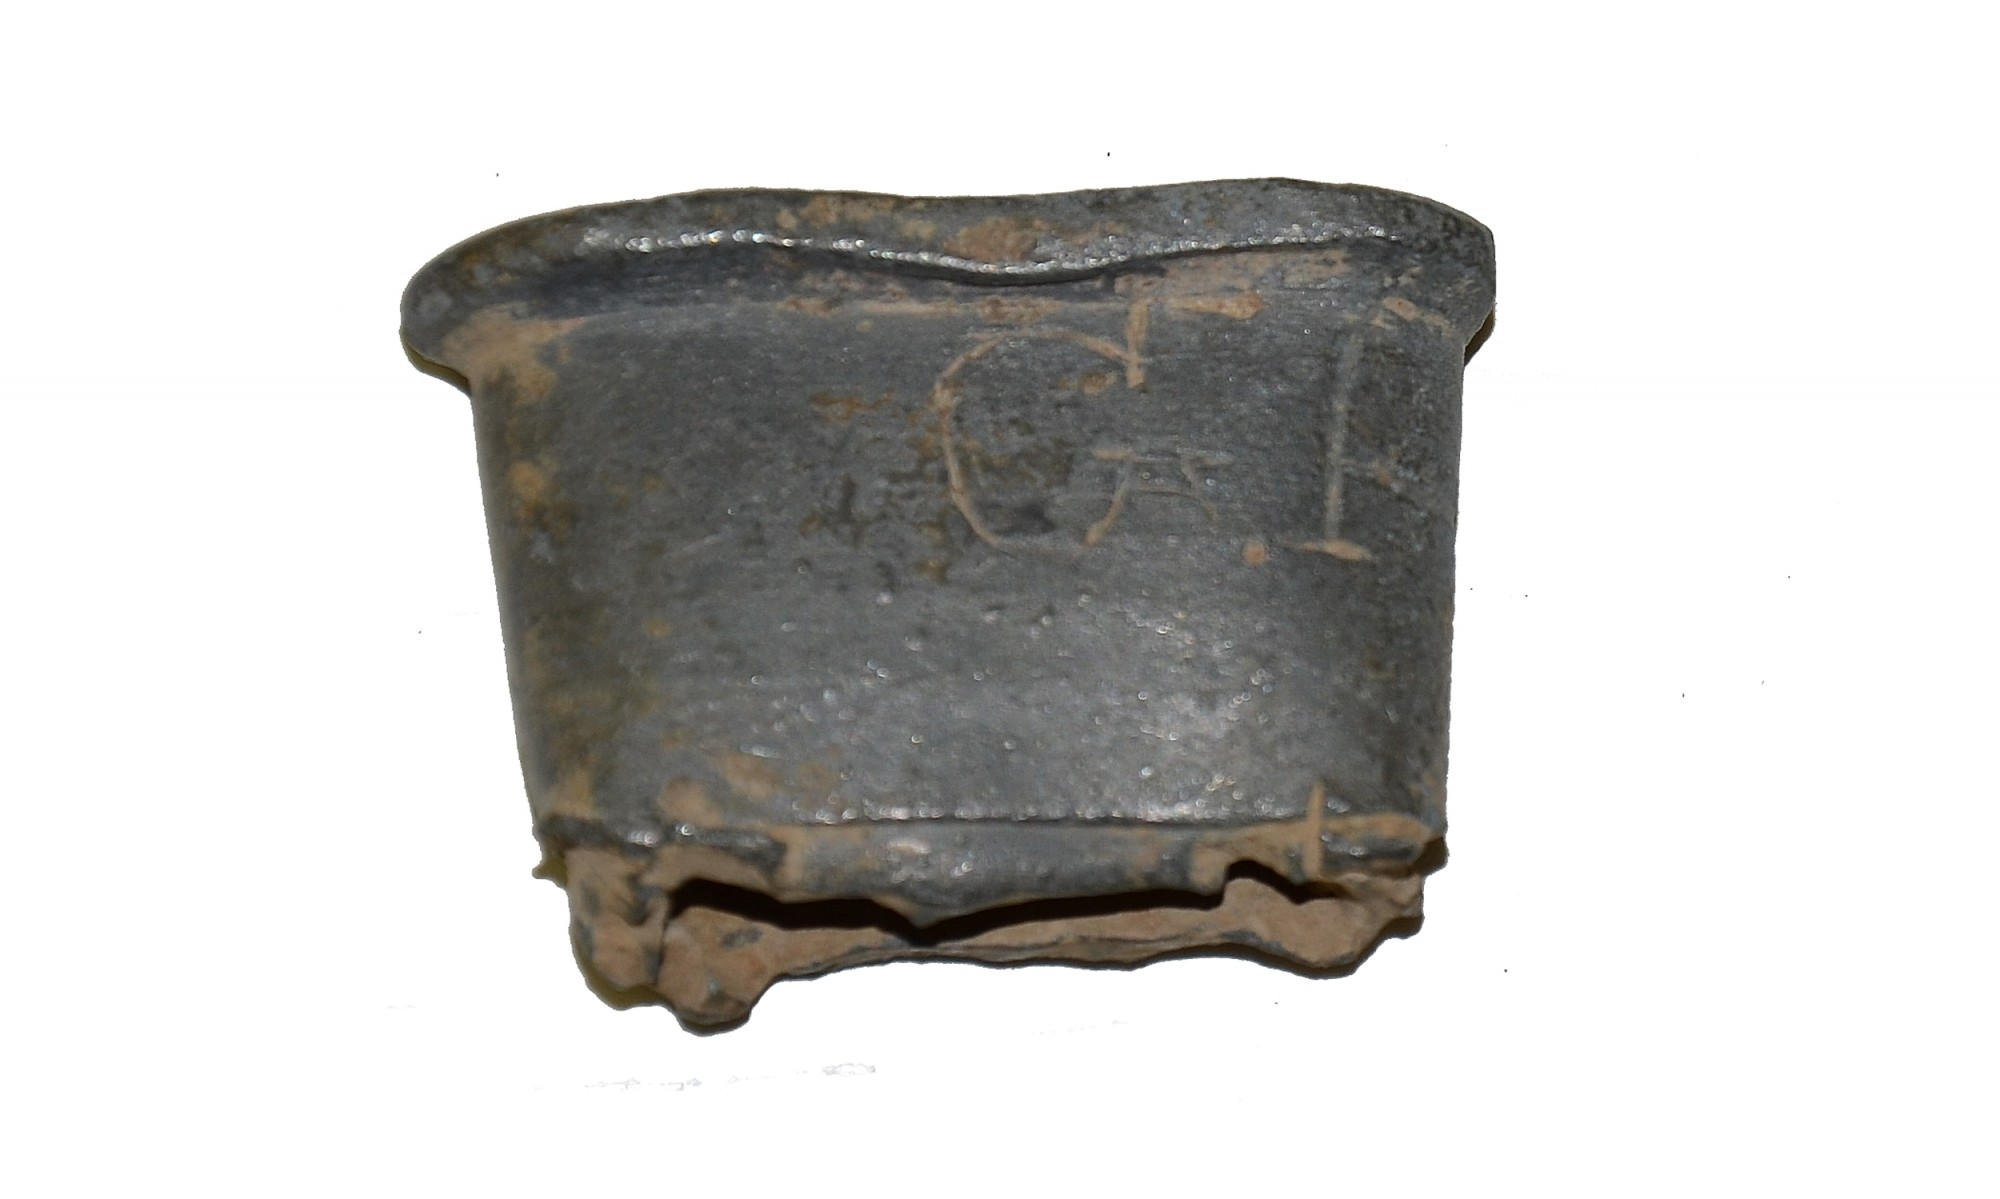 PEWTER CANTEEN SPOUT WITH INITIALS FROM GETTYSBURG